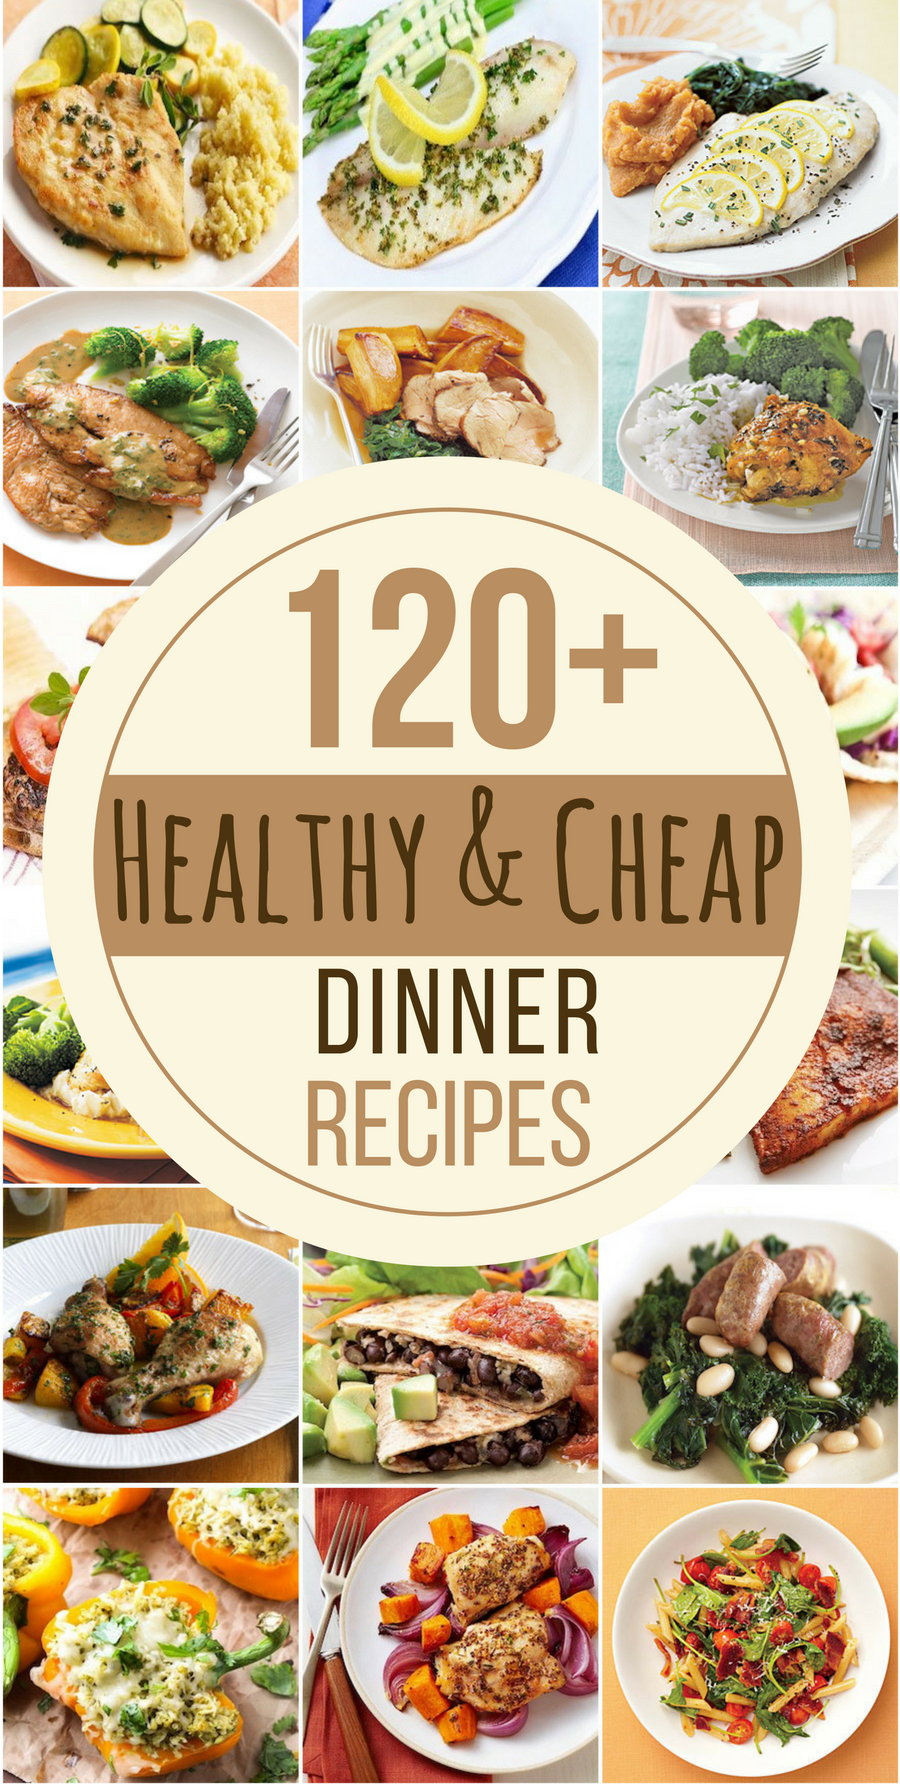 120 healthy and cheap dinner recipes - prudent penny pincher